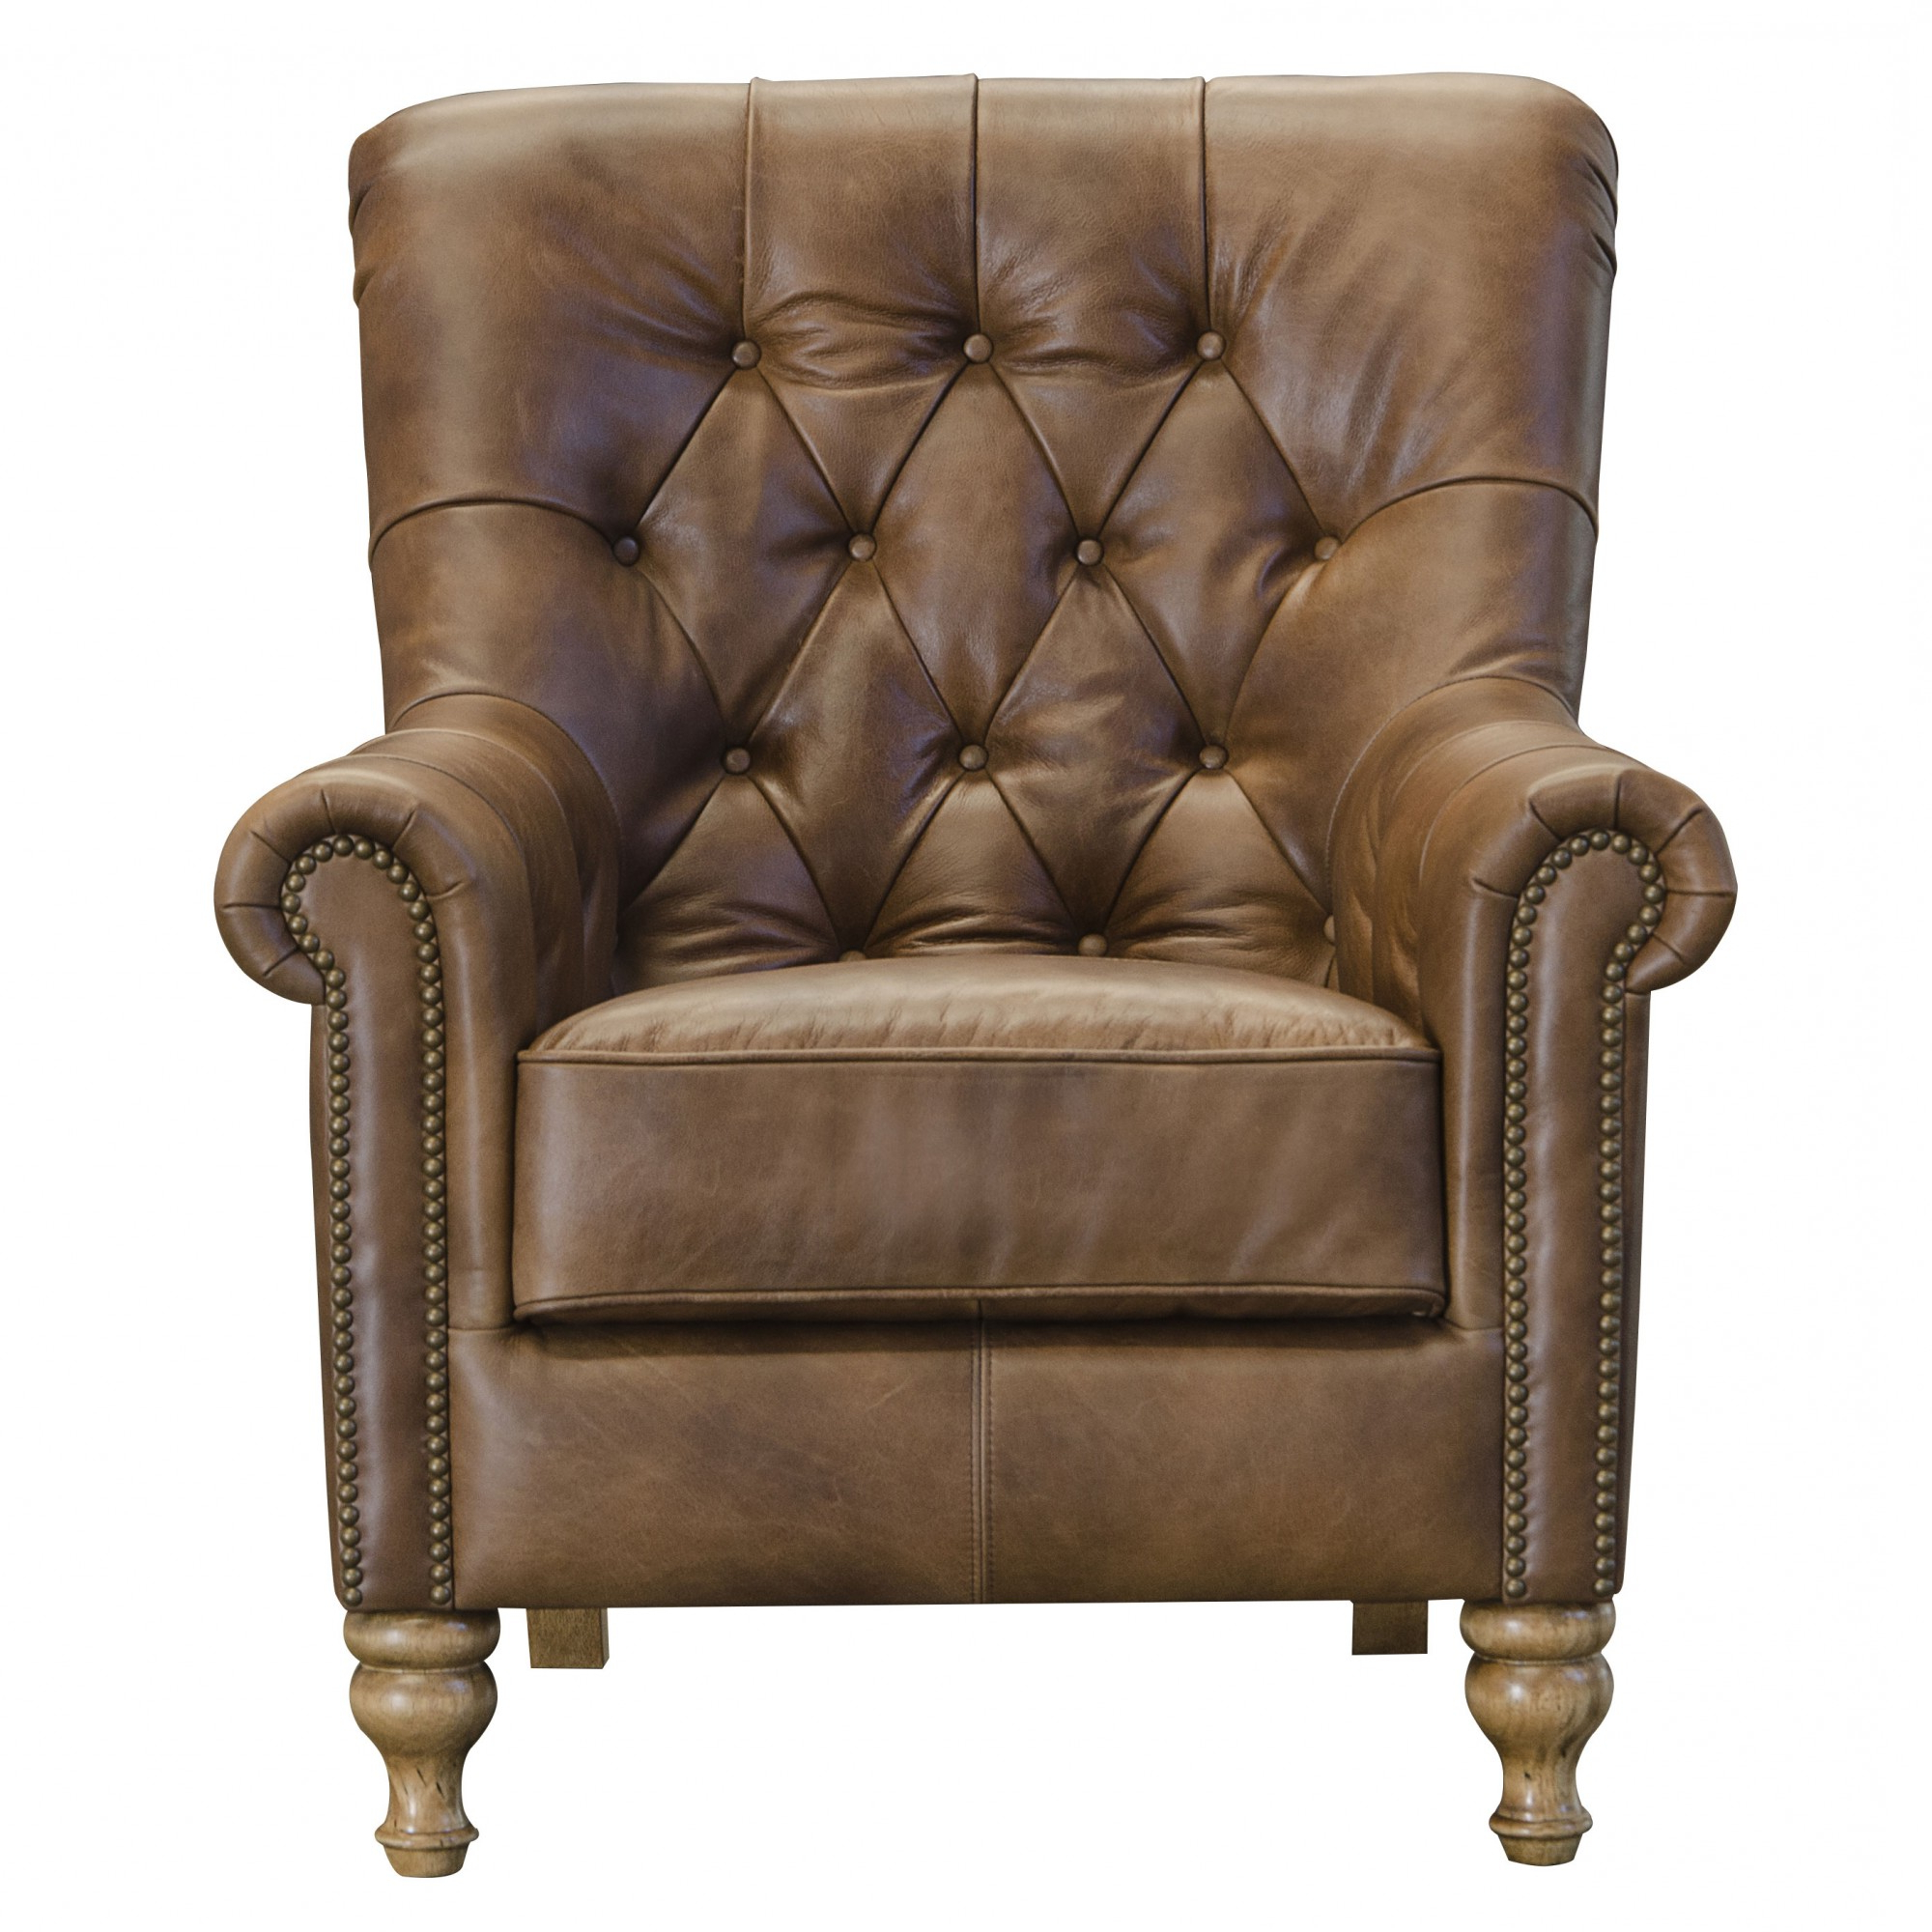 James Armchairs For Popular Alexander & James Sofia Chair (View 12 of 20)